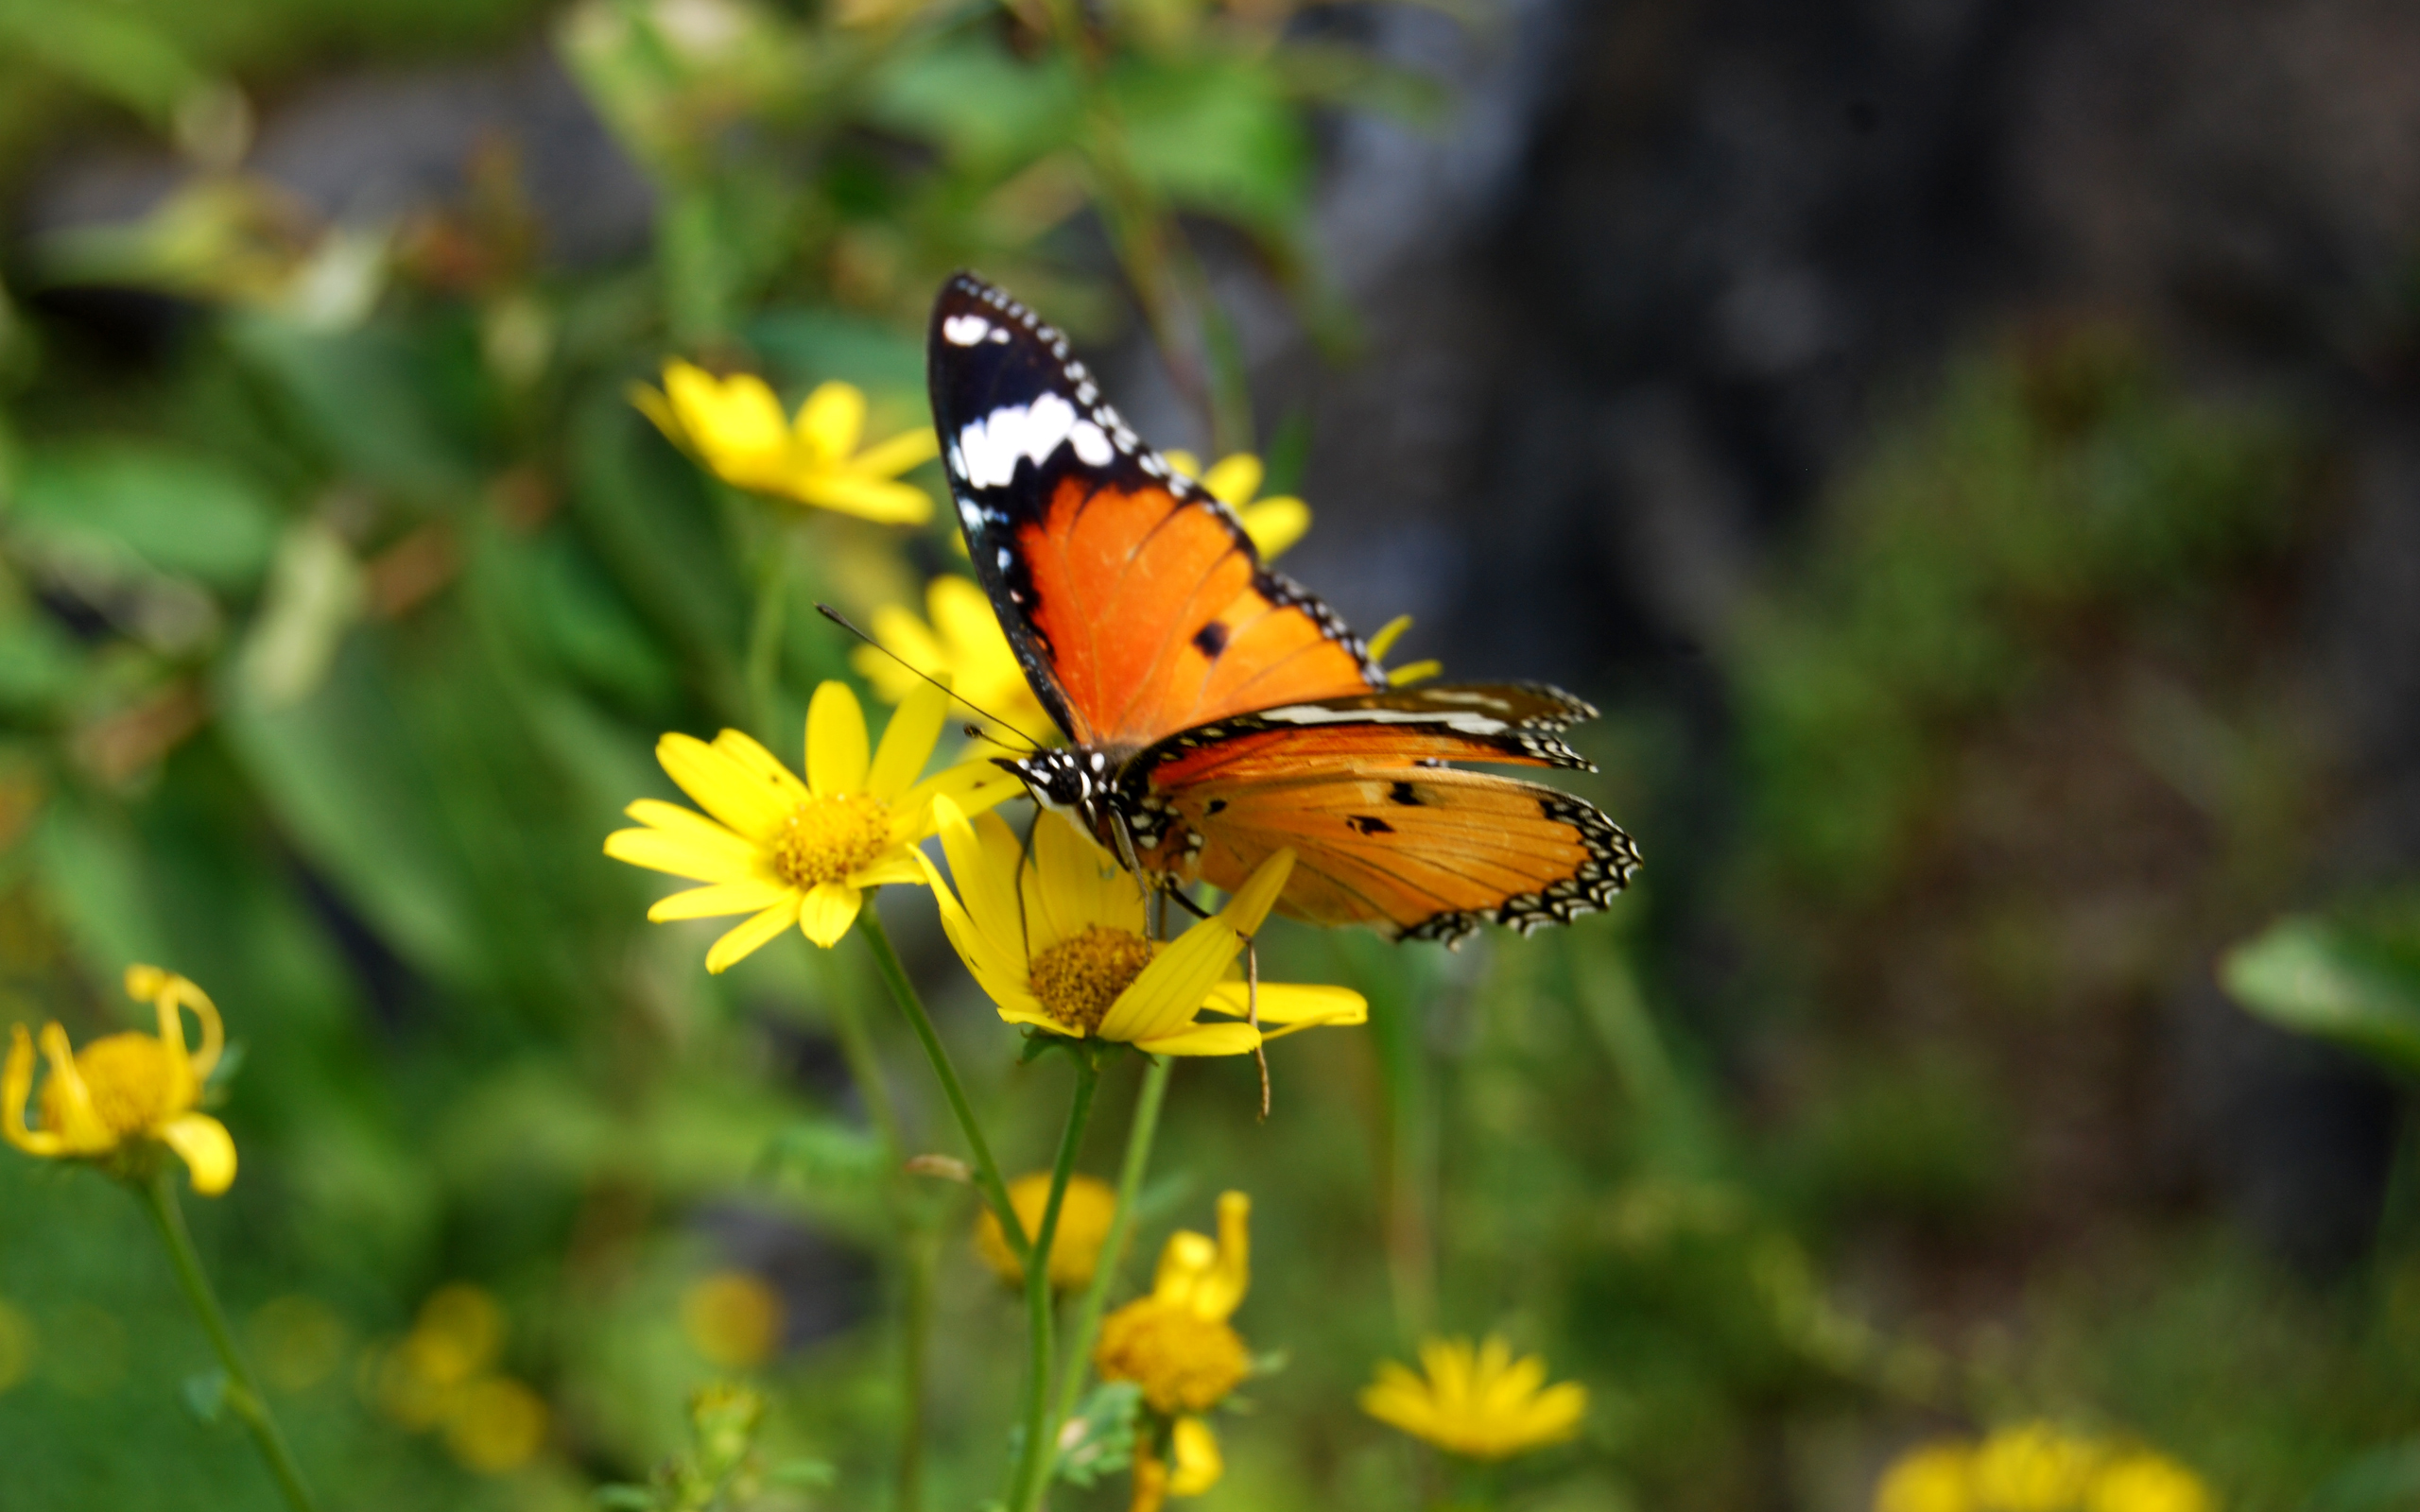 http://upload.wikimedia.org/wikipedia/commons/b/b6/Mountain_Butterfly_in_india.jpg